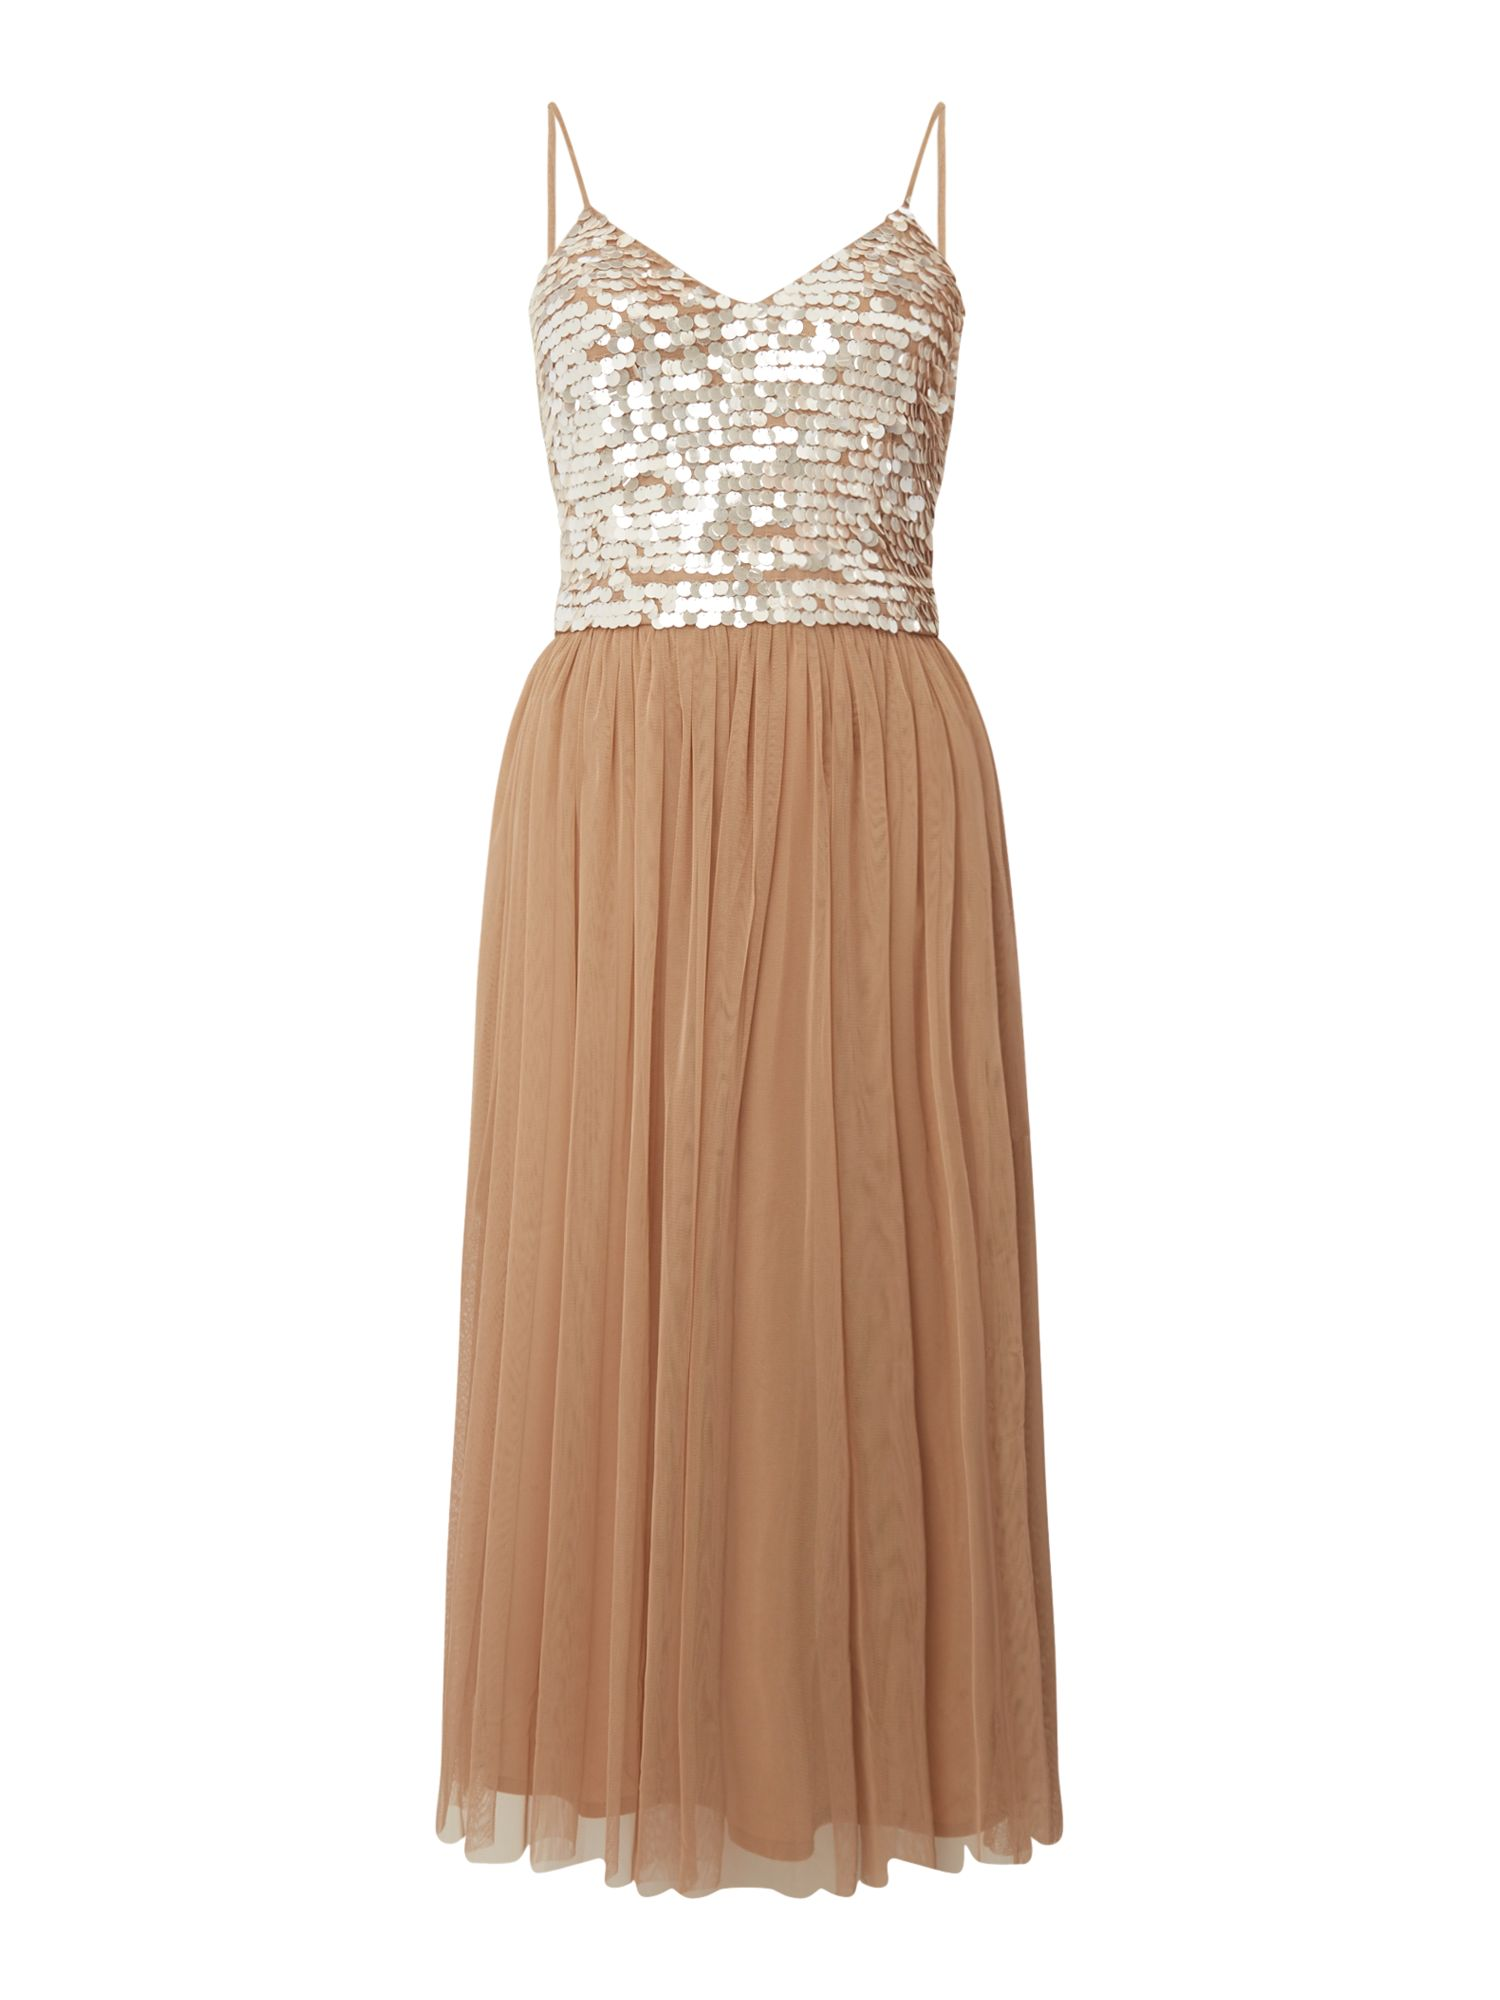 Lace and Beads Sleeveless Embellished Midi Bodycon, Taupe